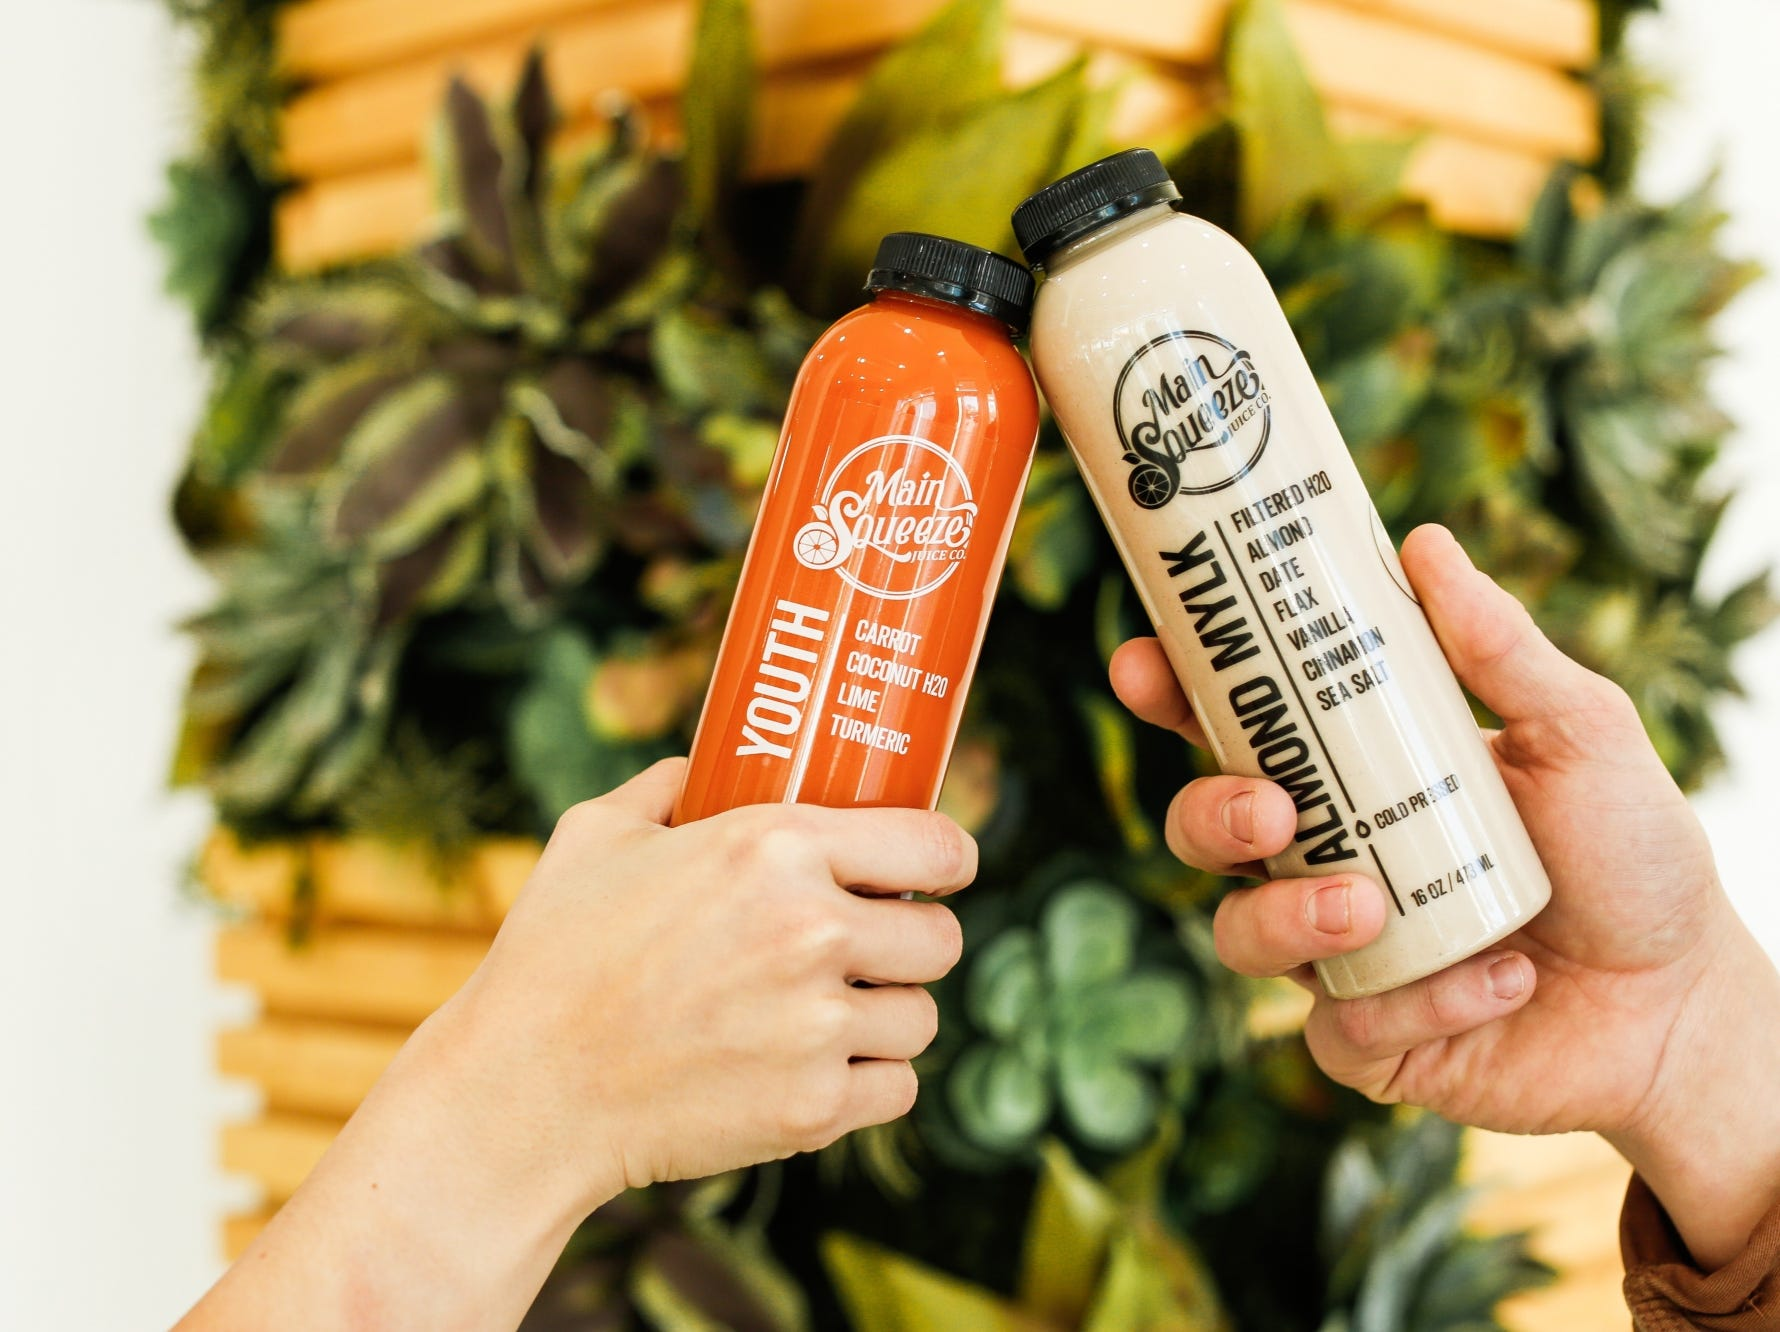 Main Squeeze Juice Co. will open a Bossier City location in March.  The juice and smoothie bar offers a range of products from cold-pressed juices and mylks to acai bowls and more.